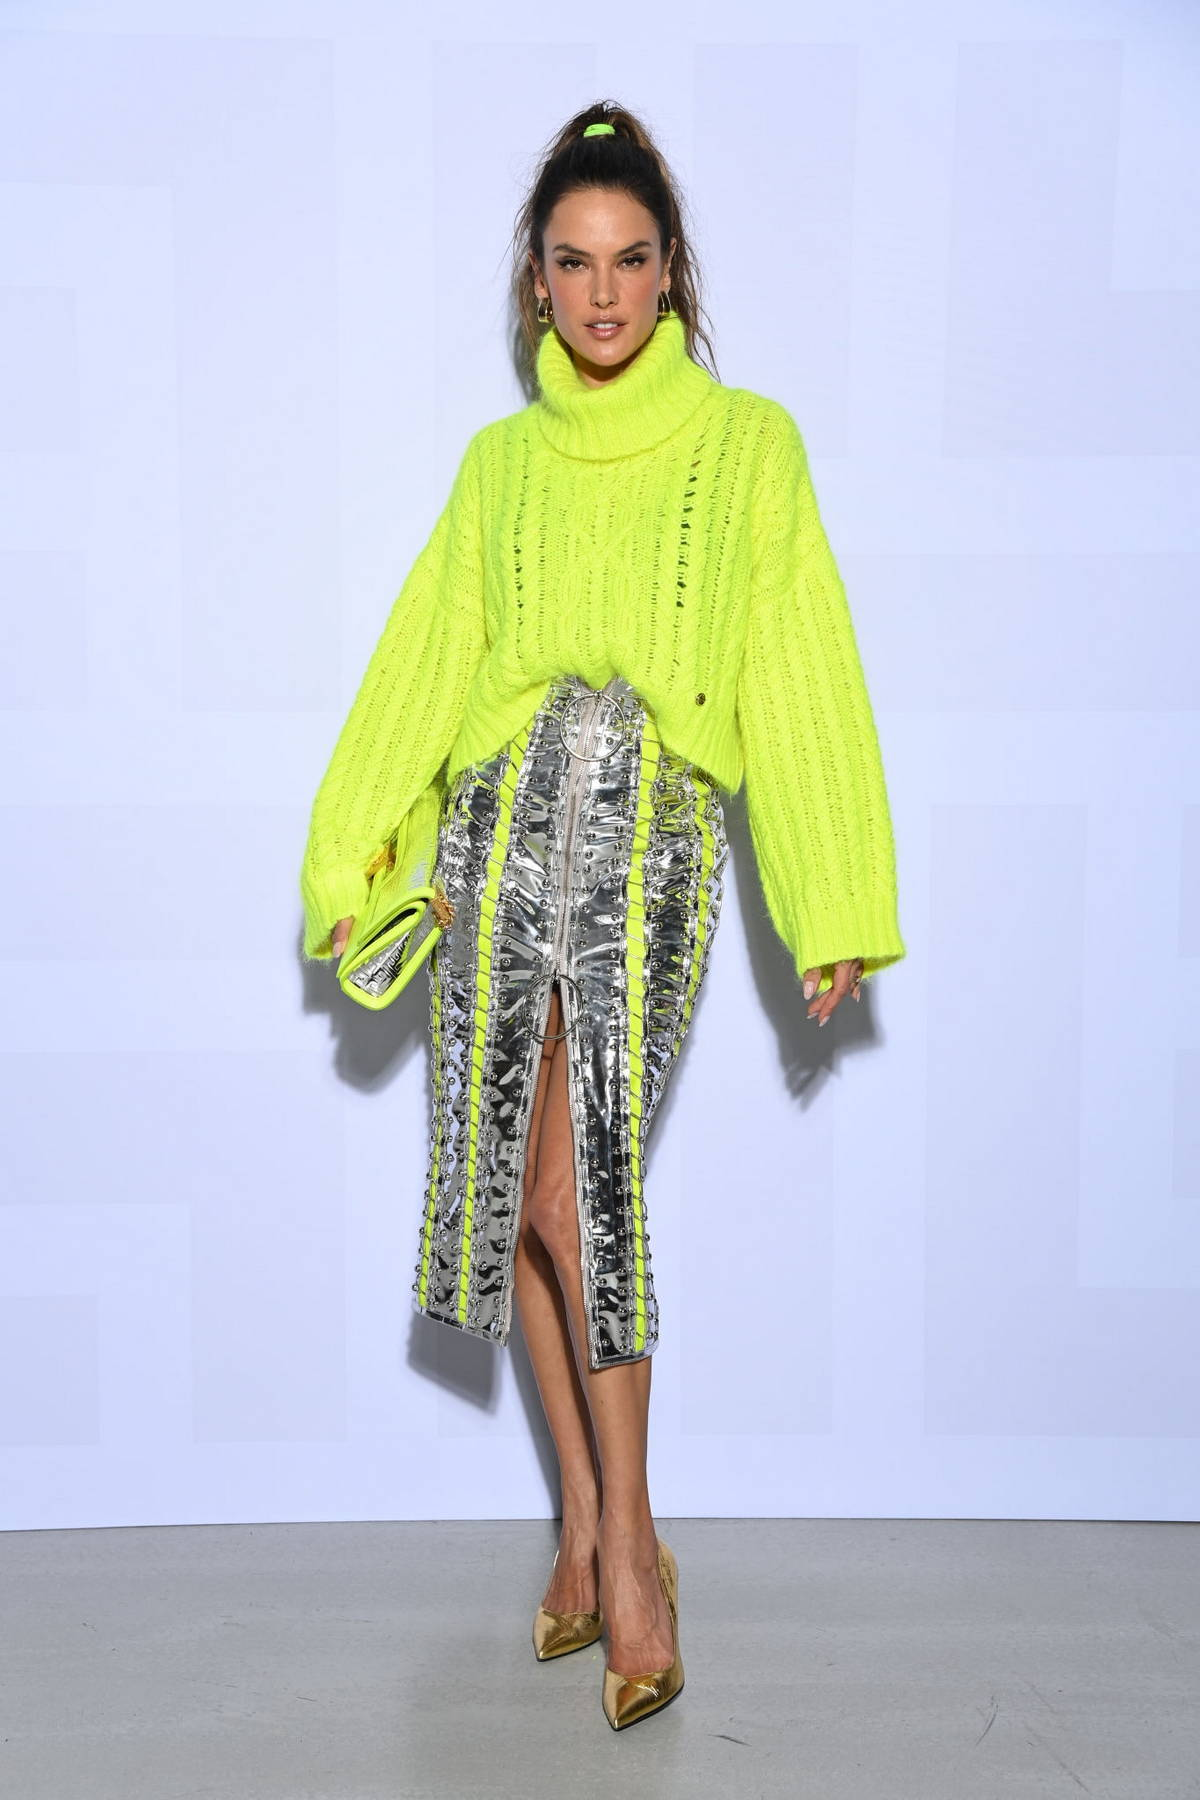 Alessandra Ambrosio attends the Balmain Festival during Paris Fashion Week in Boulogne-Billancourt, France